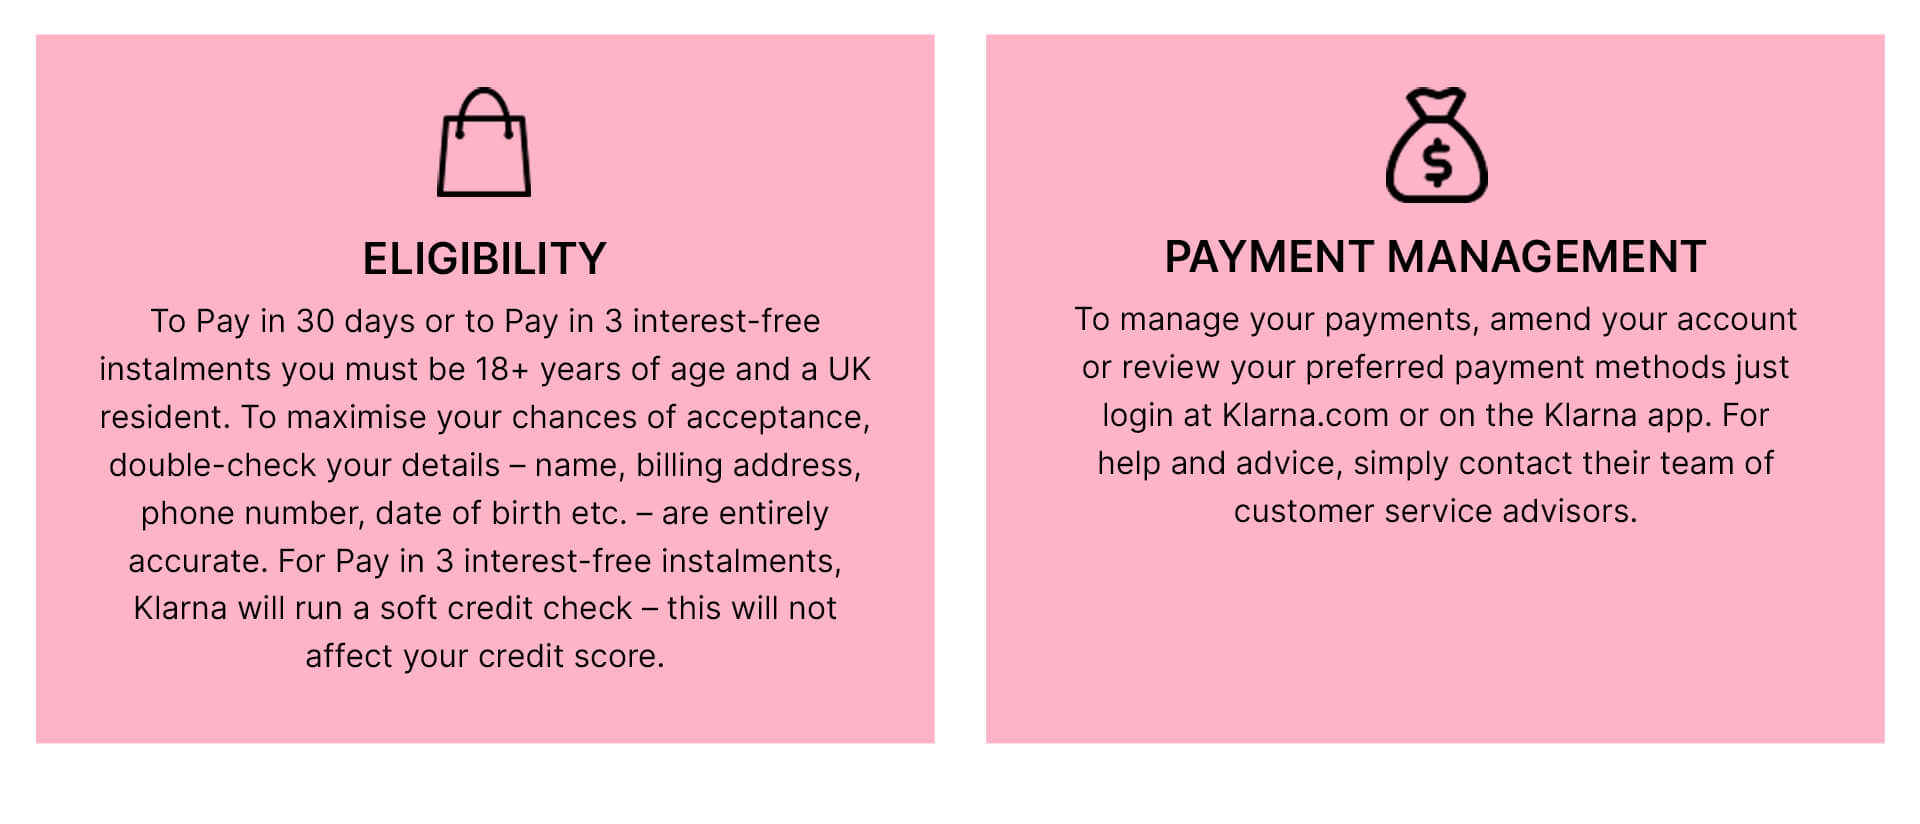 eligibility: to pay in 30 days or to pay in 3 interest-free instalments you must be 18+ years of age and a UK resident. To maximise your chances of acceptance, double check your details - name, billing address, phone number, date of birth etc. - are entirely accurate. For Pay in 3 interest-free instalments, Klarna will run a soft credit check - this will not affect your credit score. Payment management: to manage your payments, amend your account or review your preferred payment methods just login at Klarna.com or on the Klarna app. For help and advice, simply contact their team of customer service advisors.